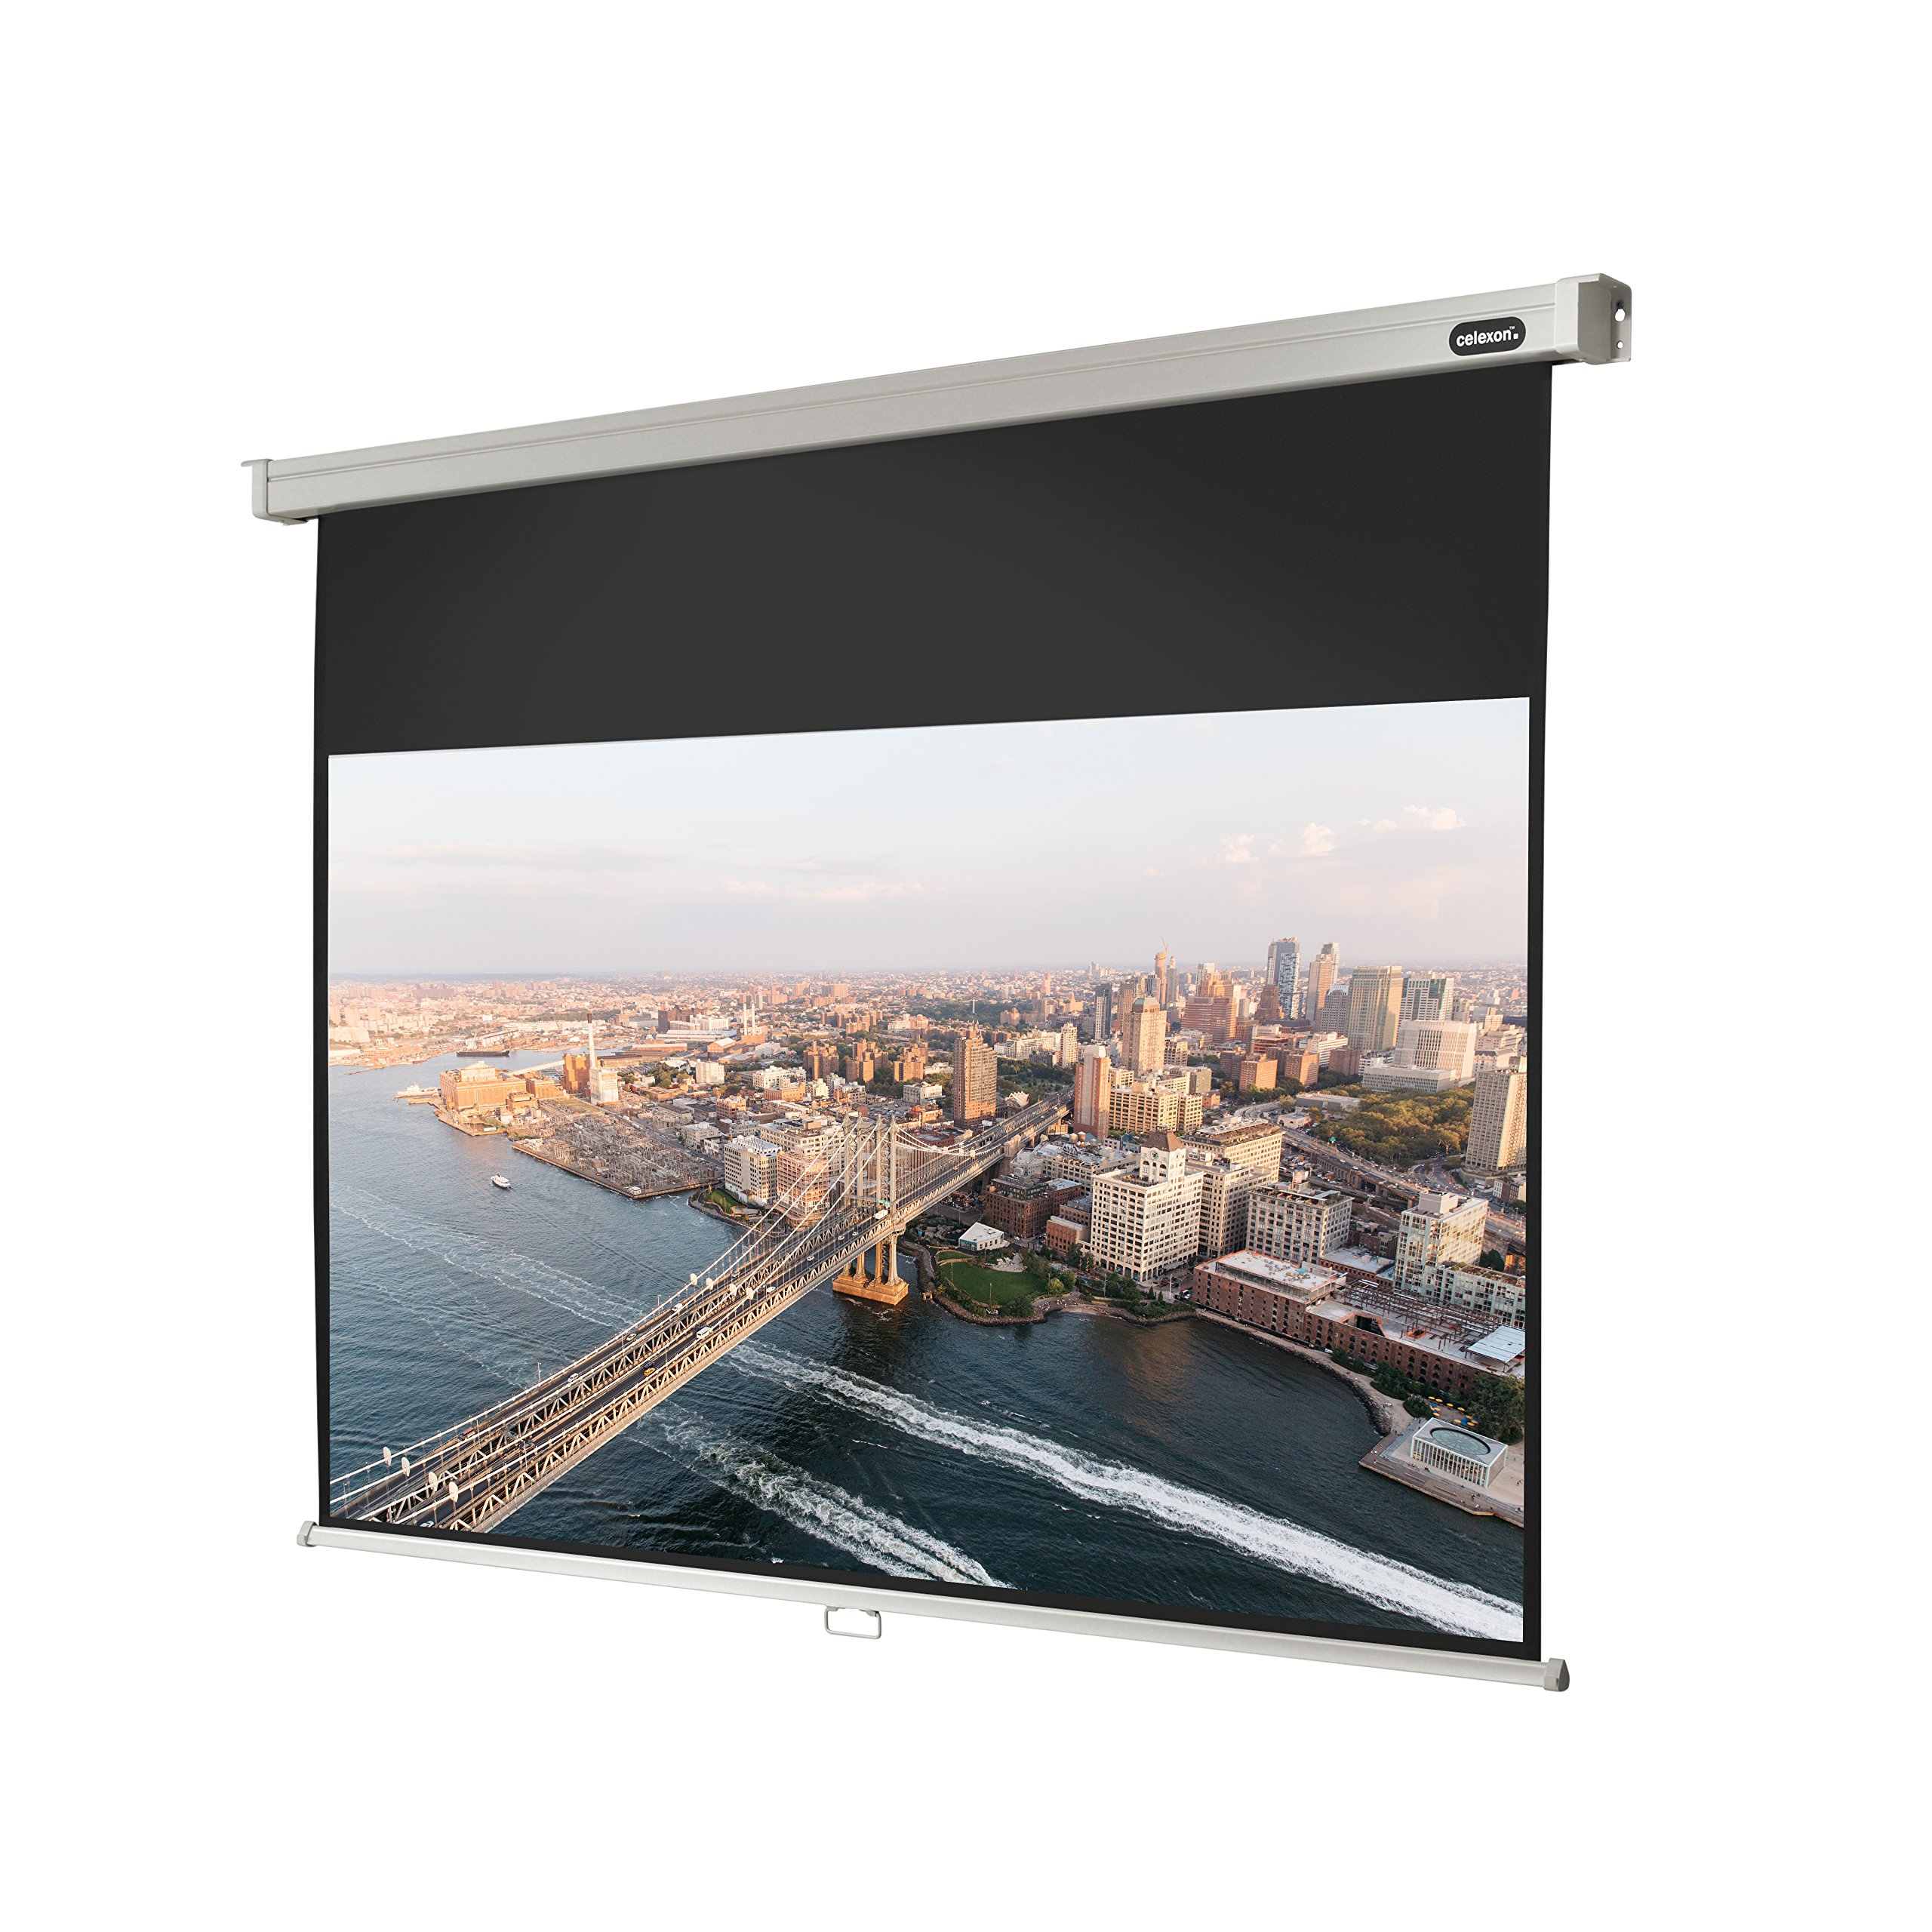 celexon 81'' Manual Professional Plus pull down projection screen, 71 x 40 inches viewing area, 16:9 format, Wall or ceiling mounting, Gain factor of 1.2